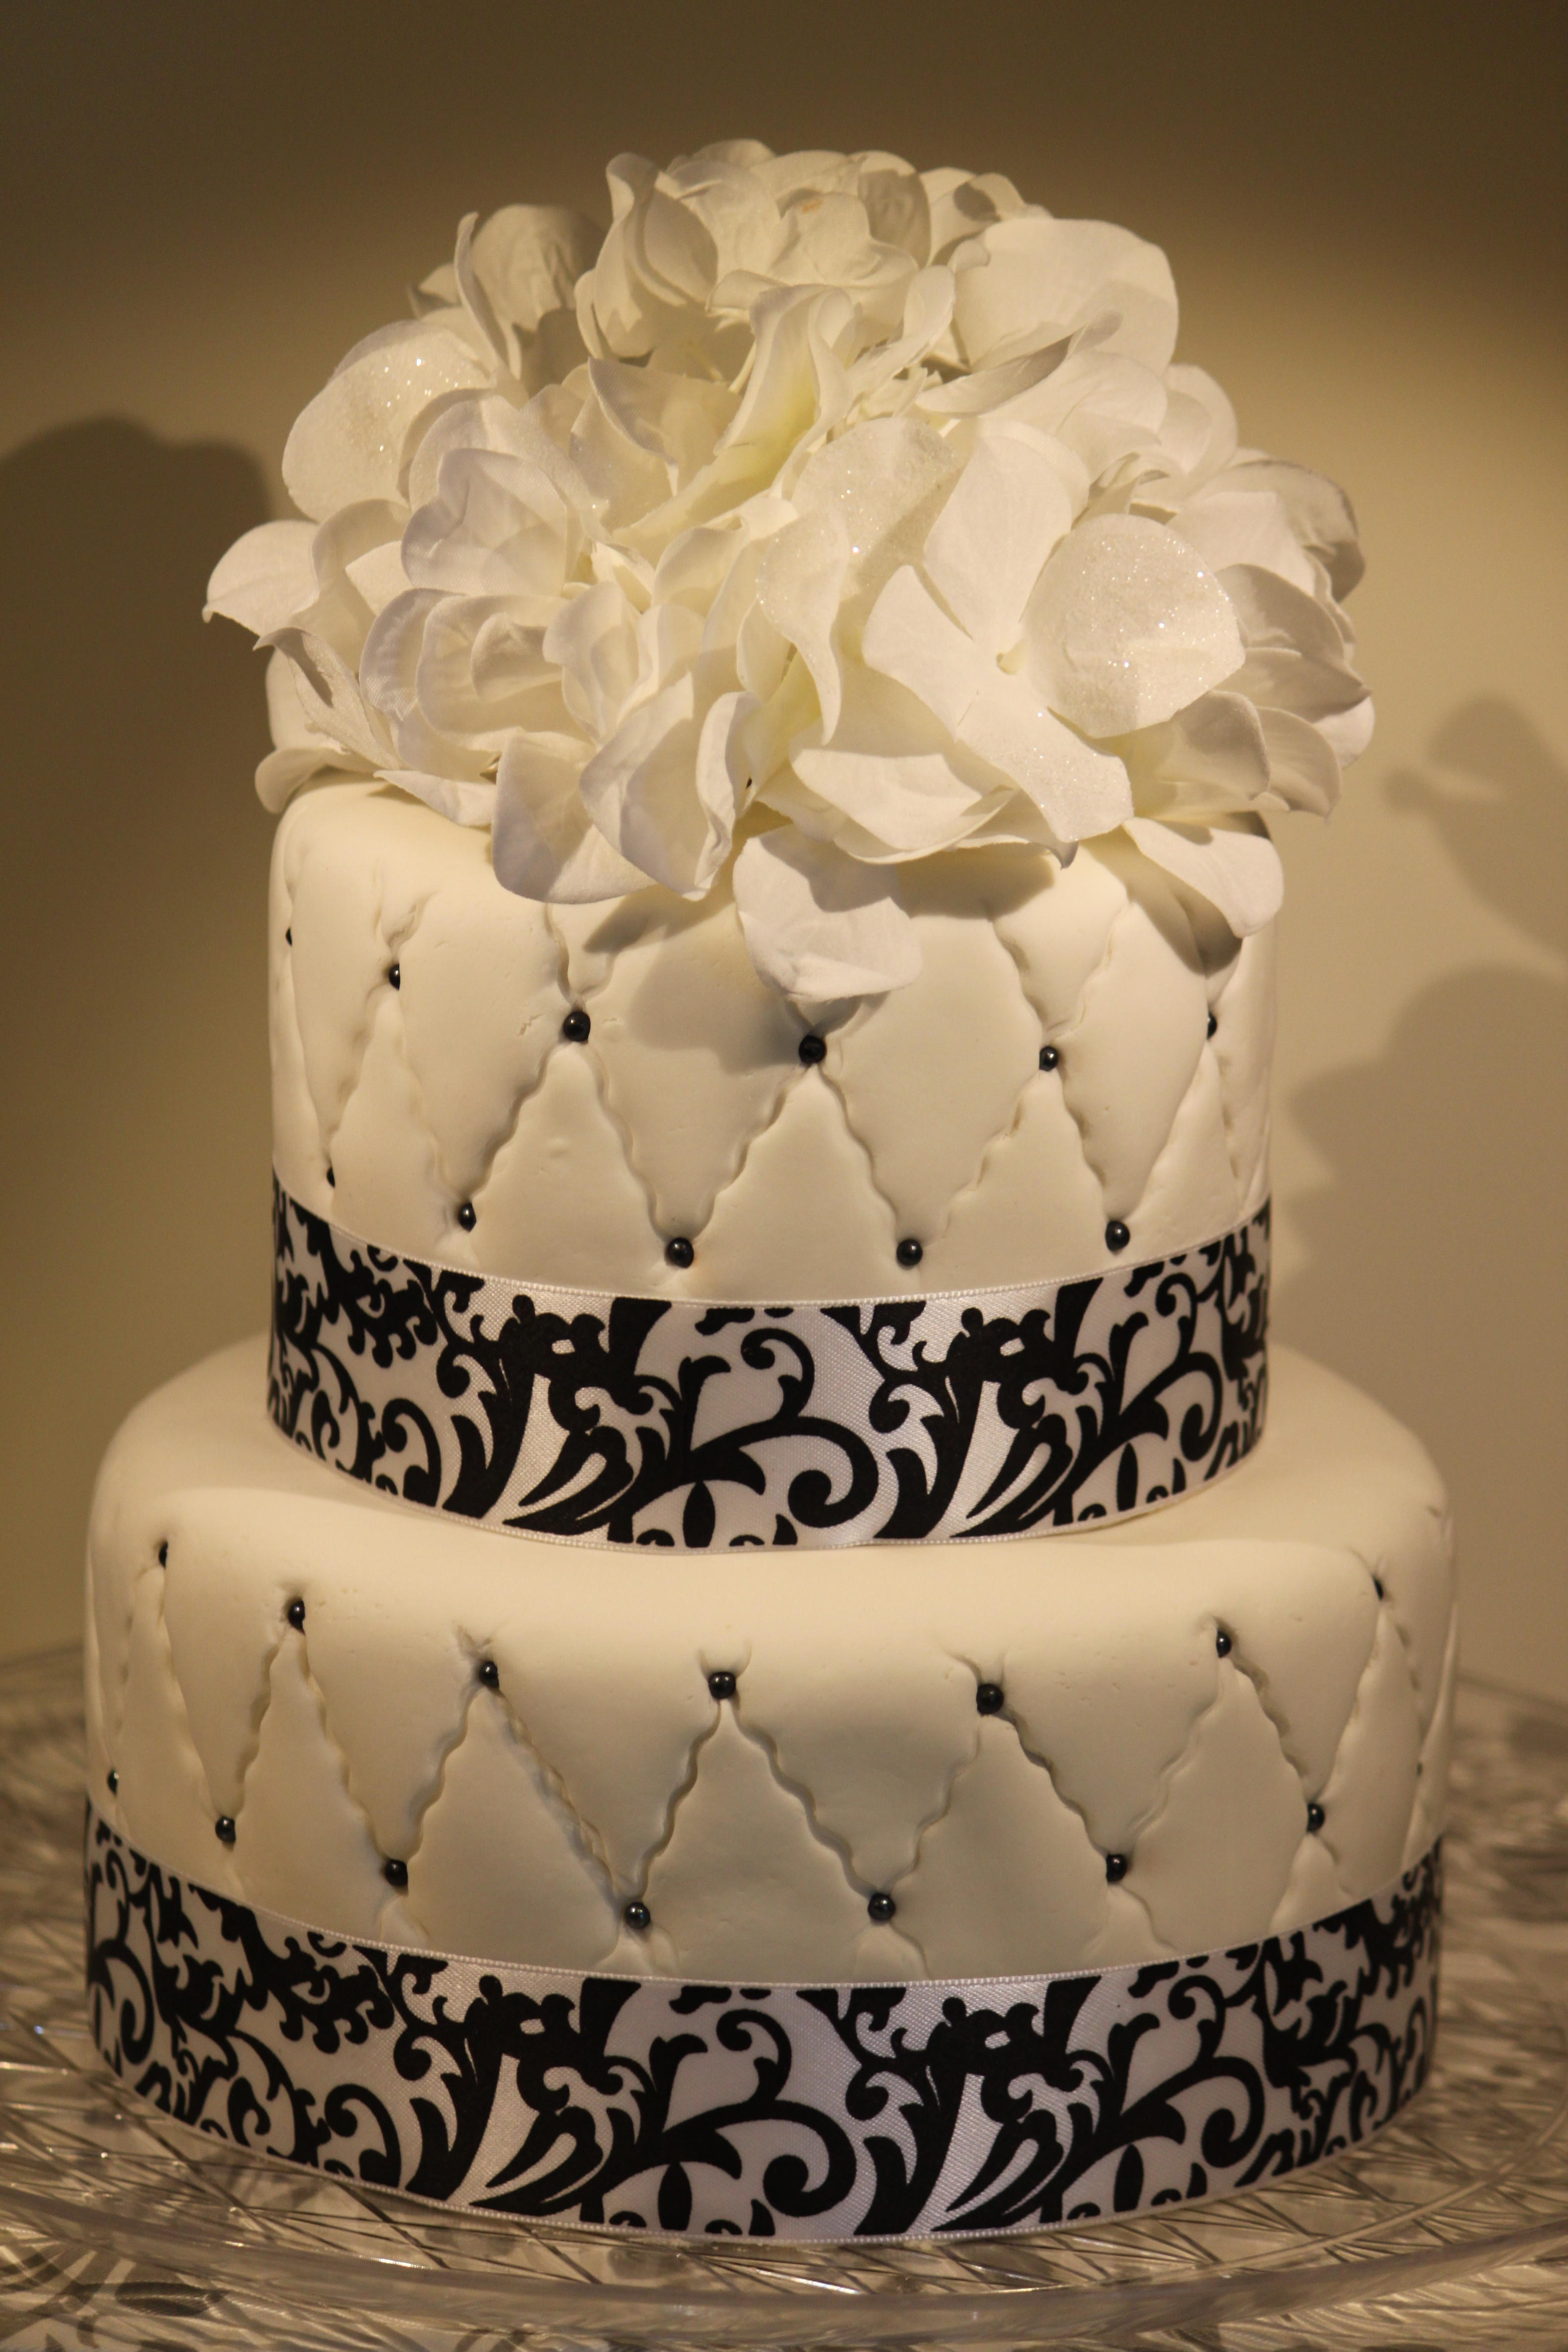 Best ideas about White Birthday Cake . Save or Pin Black and White Quilted Fondant Birthday Cake Now.